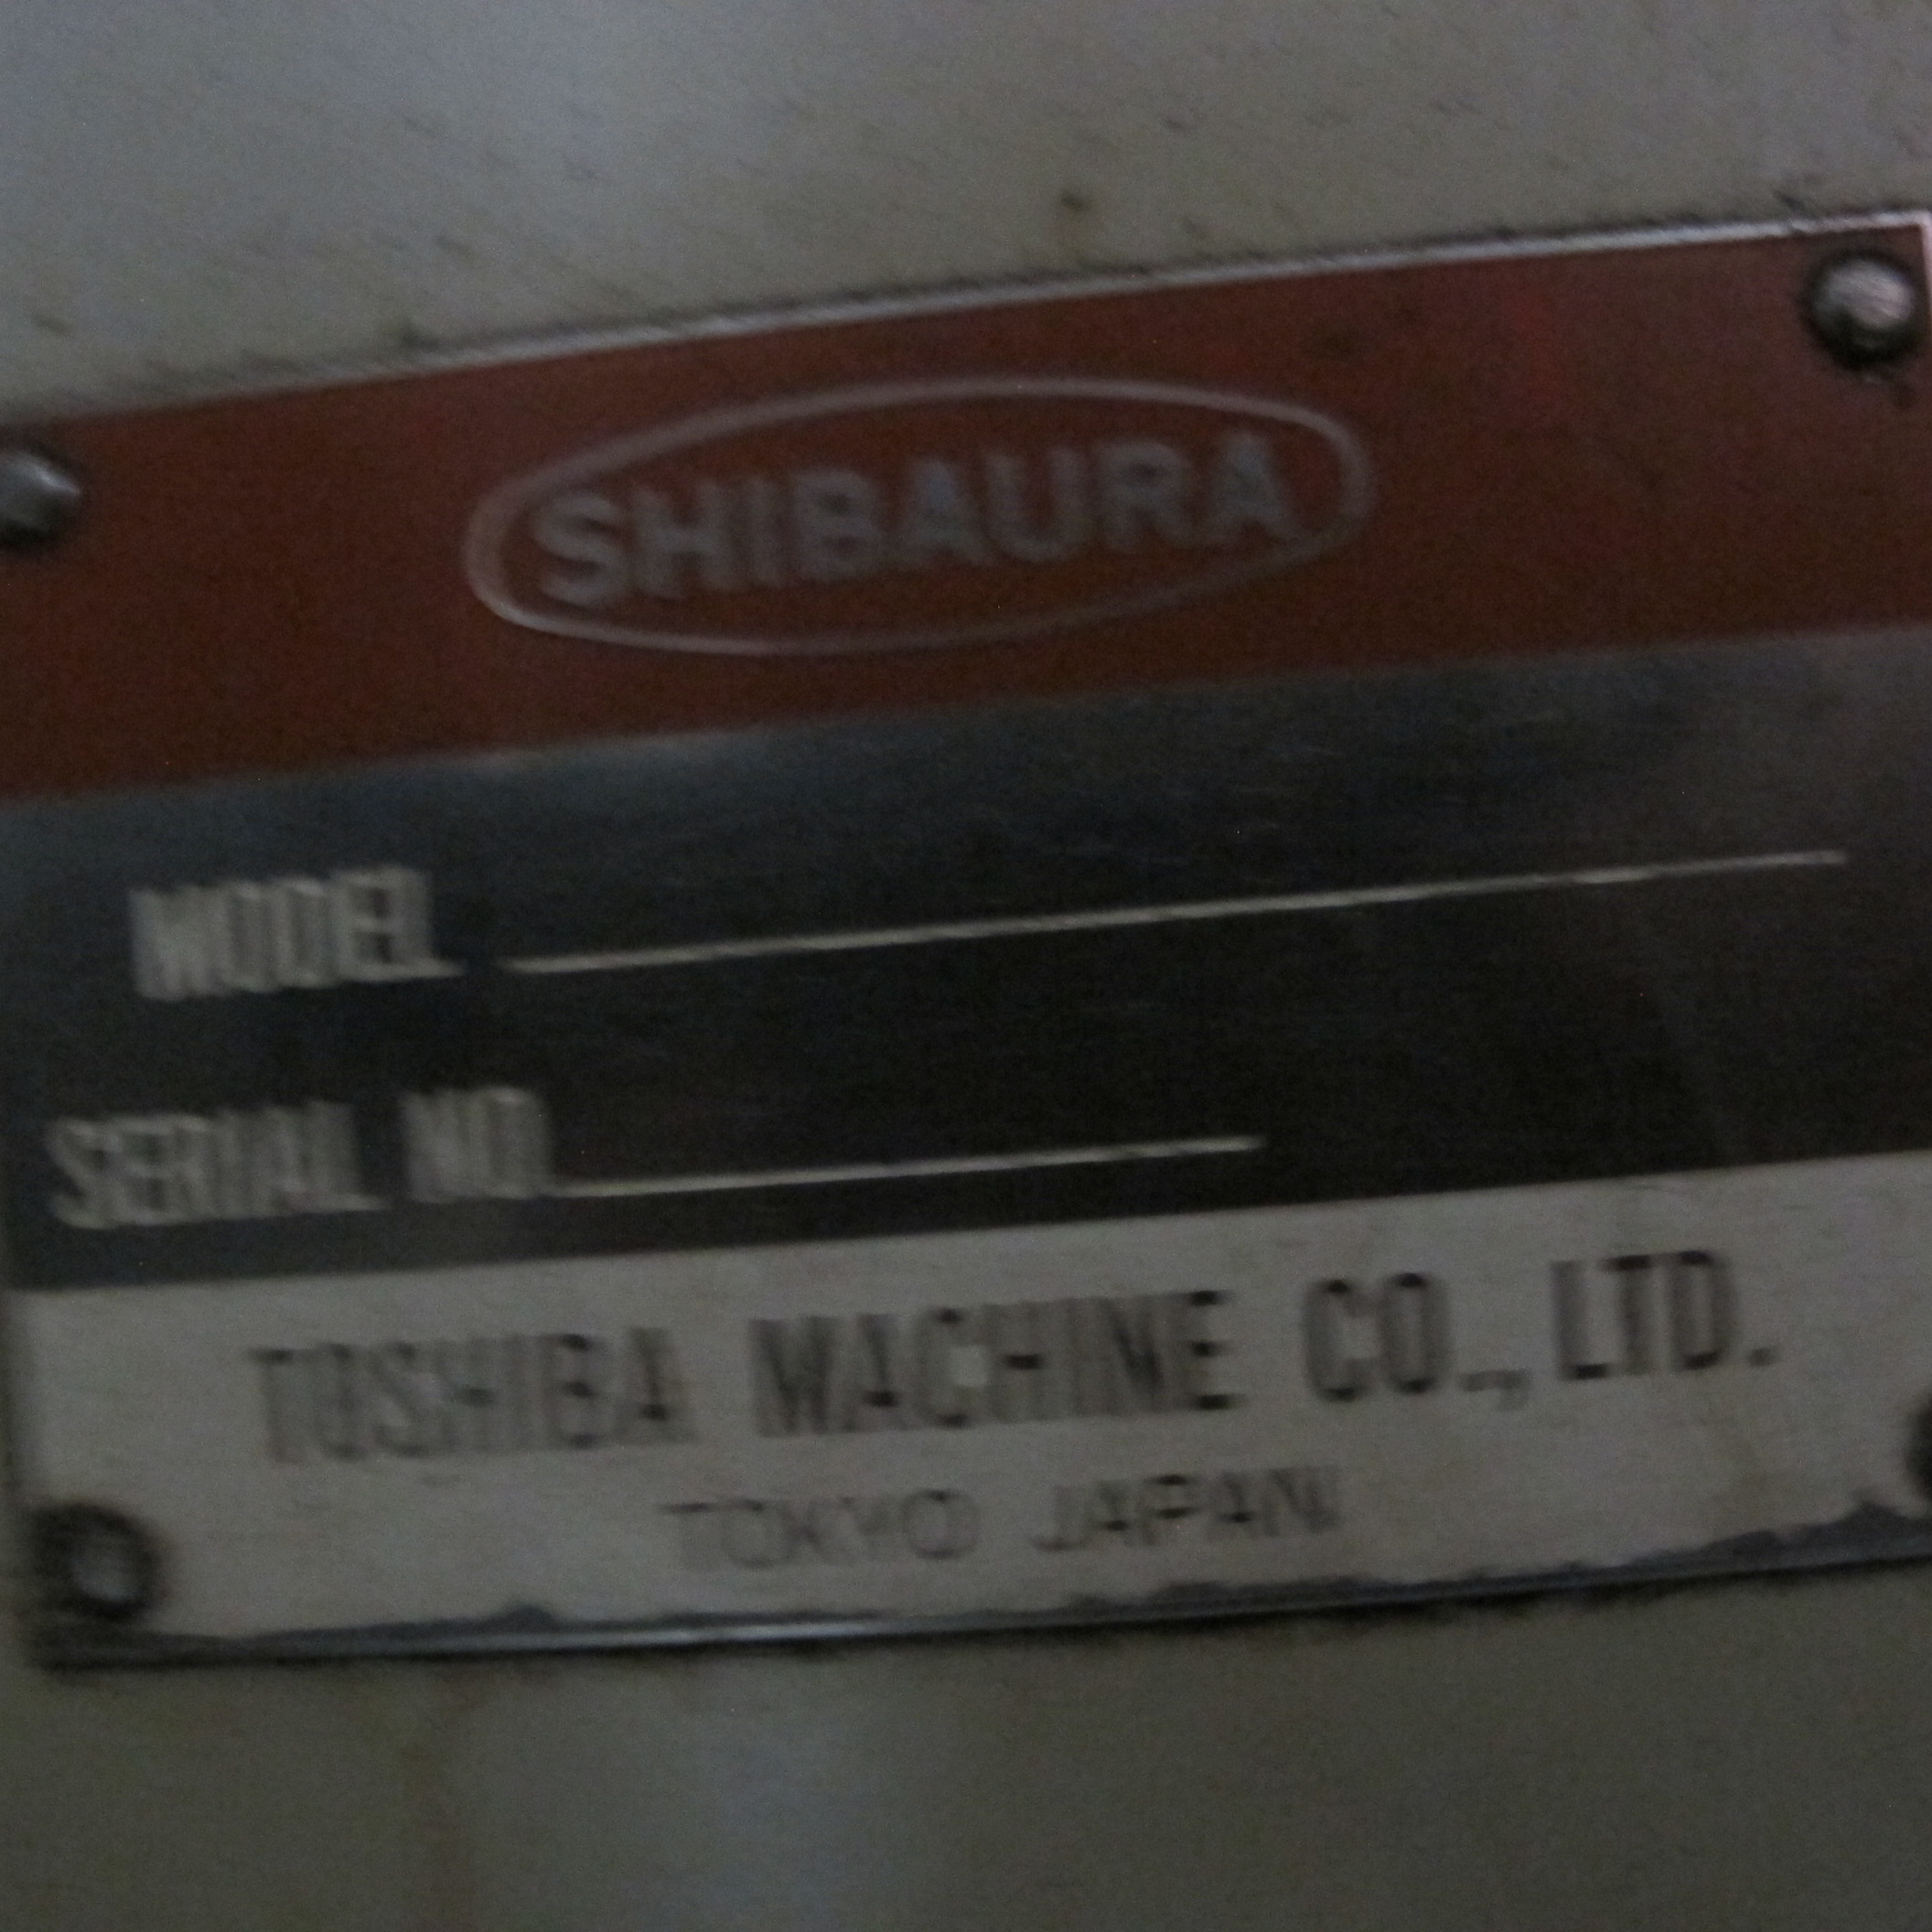 """SHIBAURA VMC-45 CNC VERTICAL MACHINING CENTER, 18"""" X 40"""" TABLE, TOSNUC CNC CONTROLS, 20 ATC, COOLING - Image 4 of 6"""